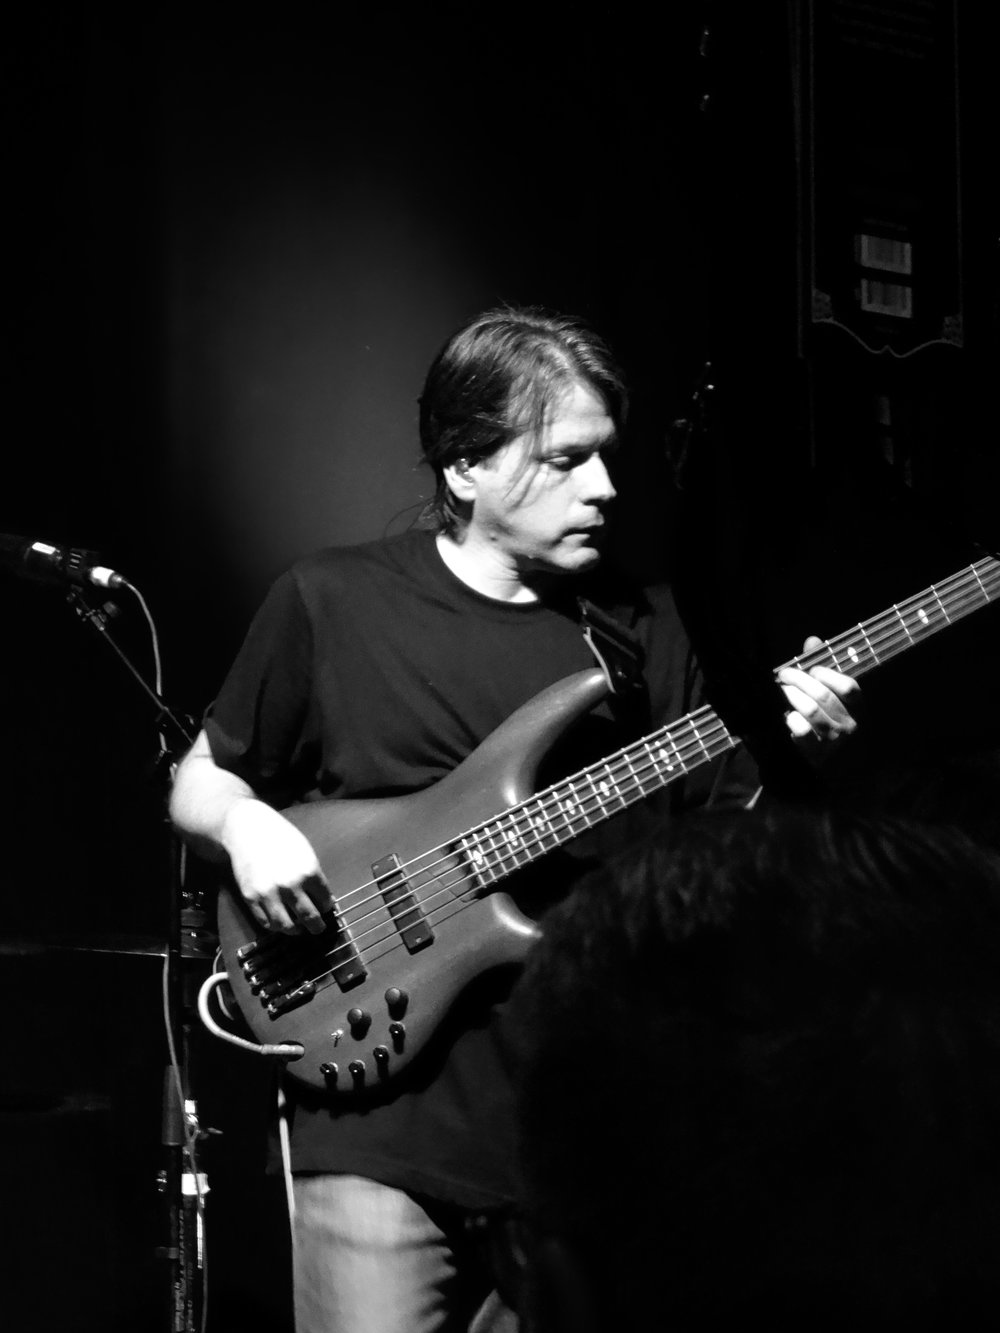 Patrick Bettison bass guitar